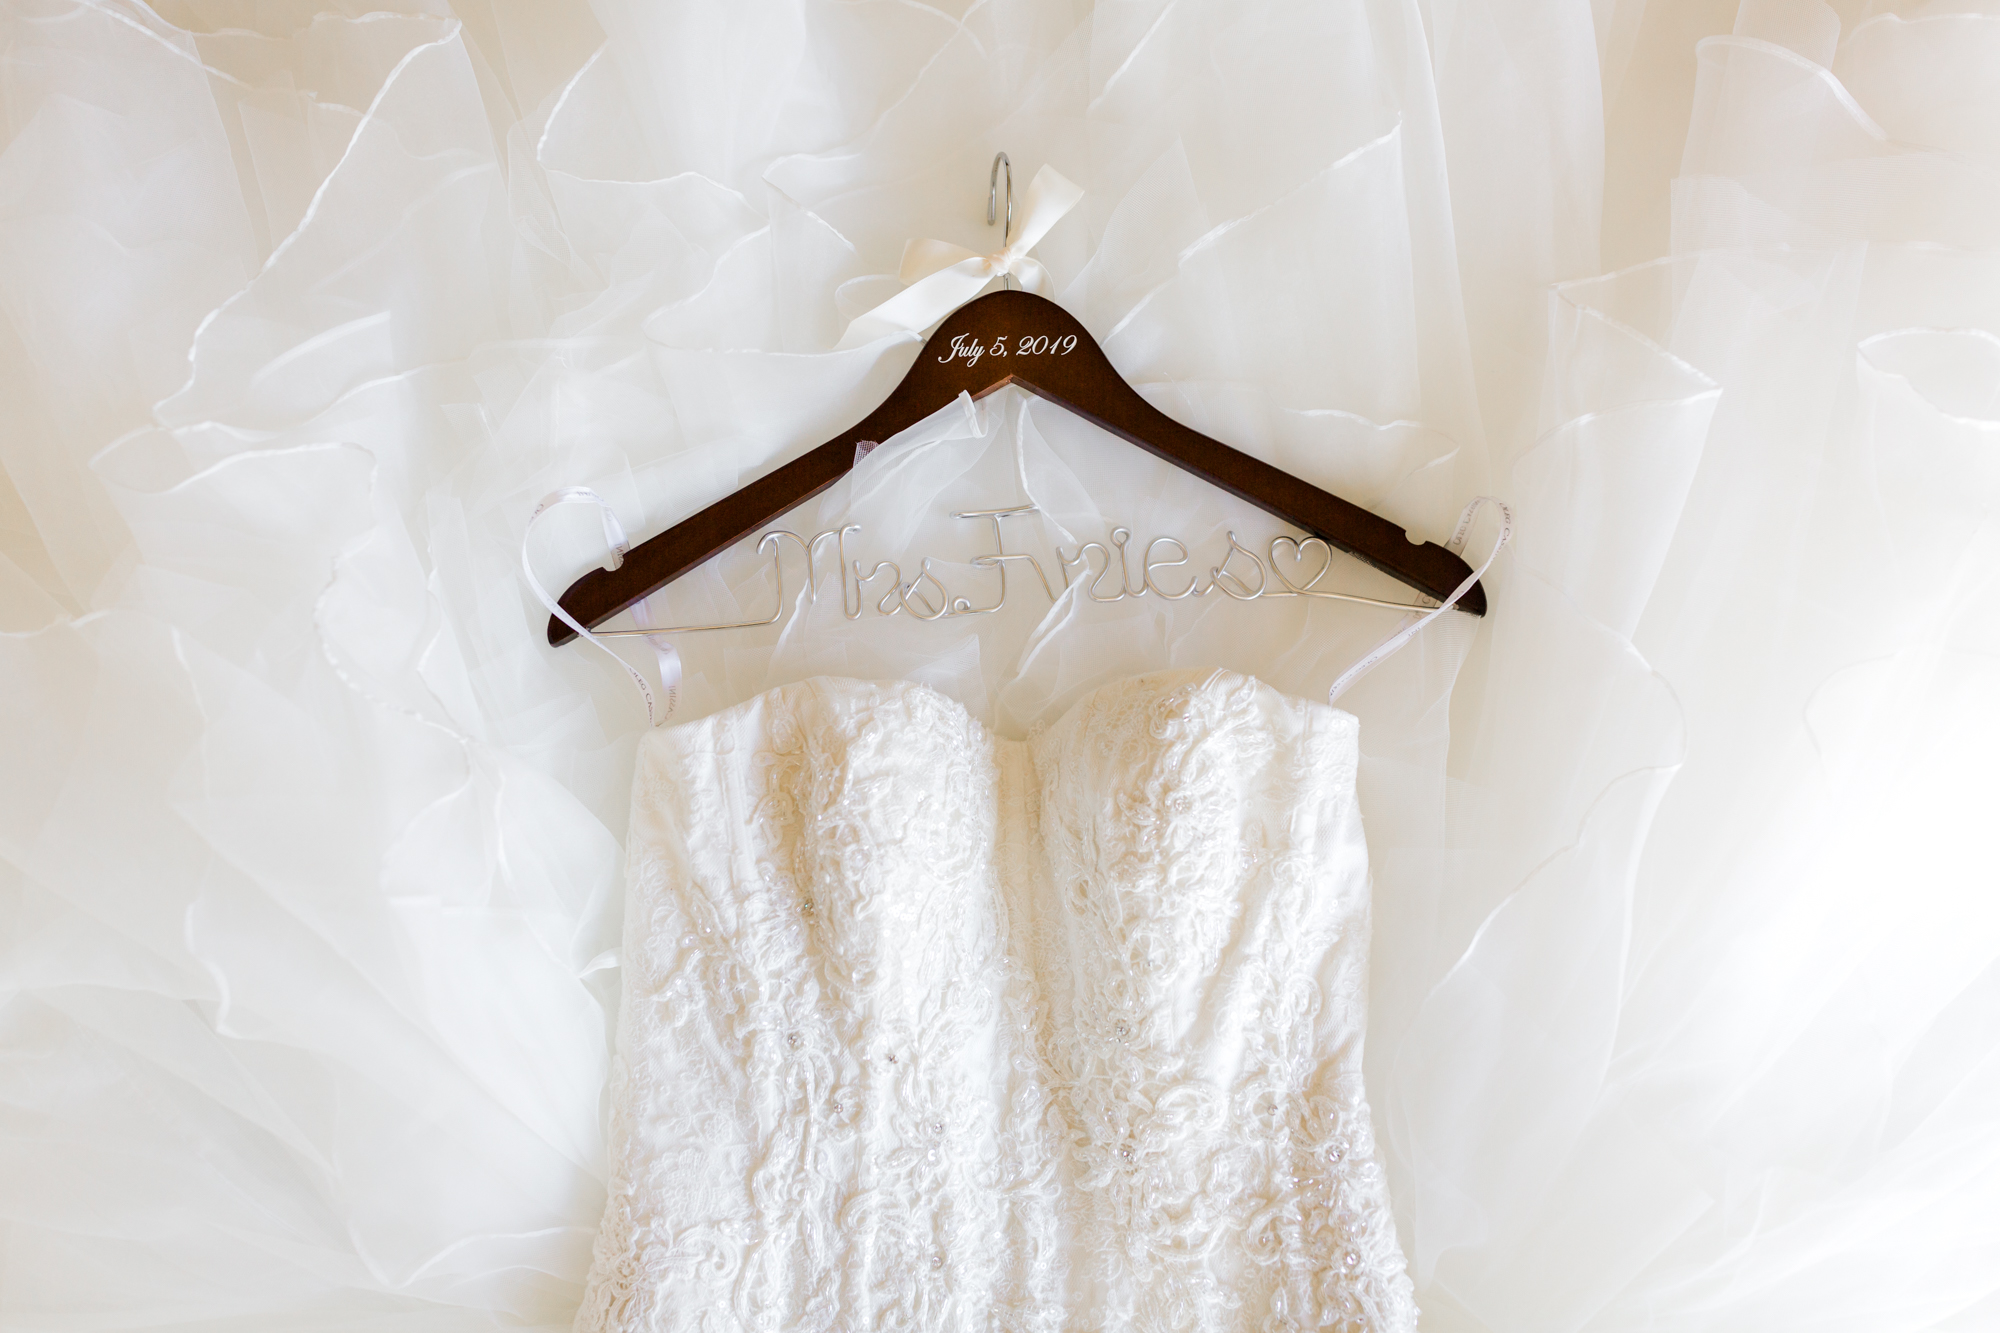 Wedding dress laying on bed